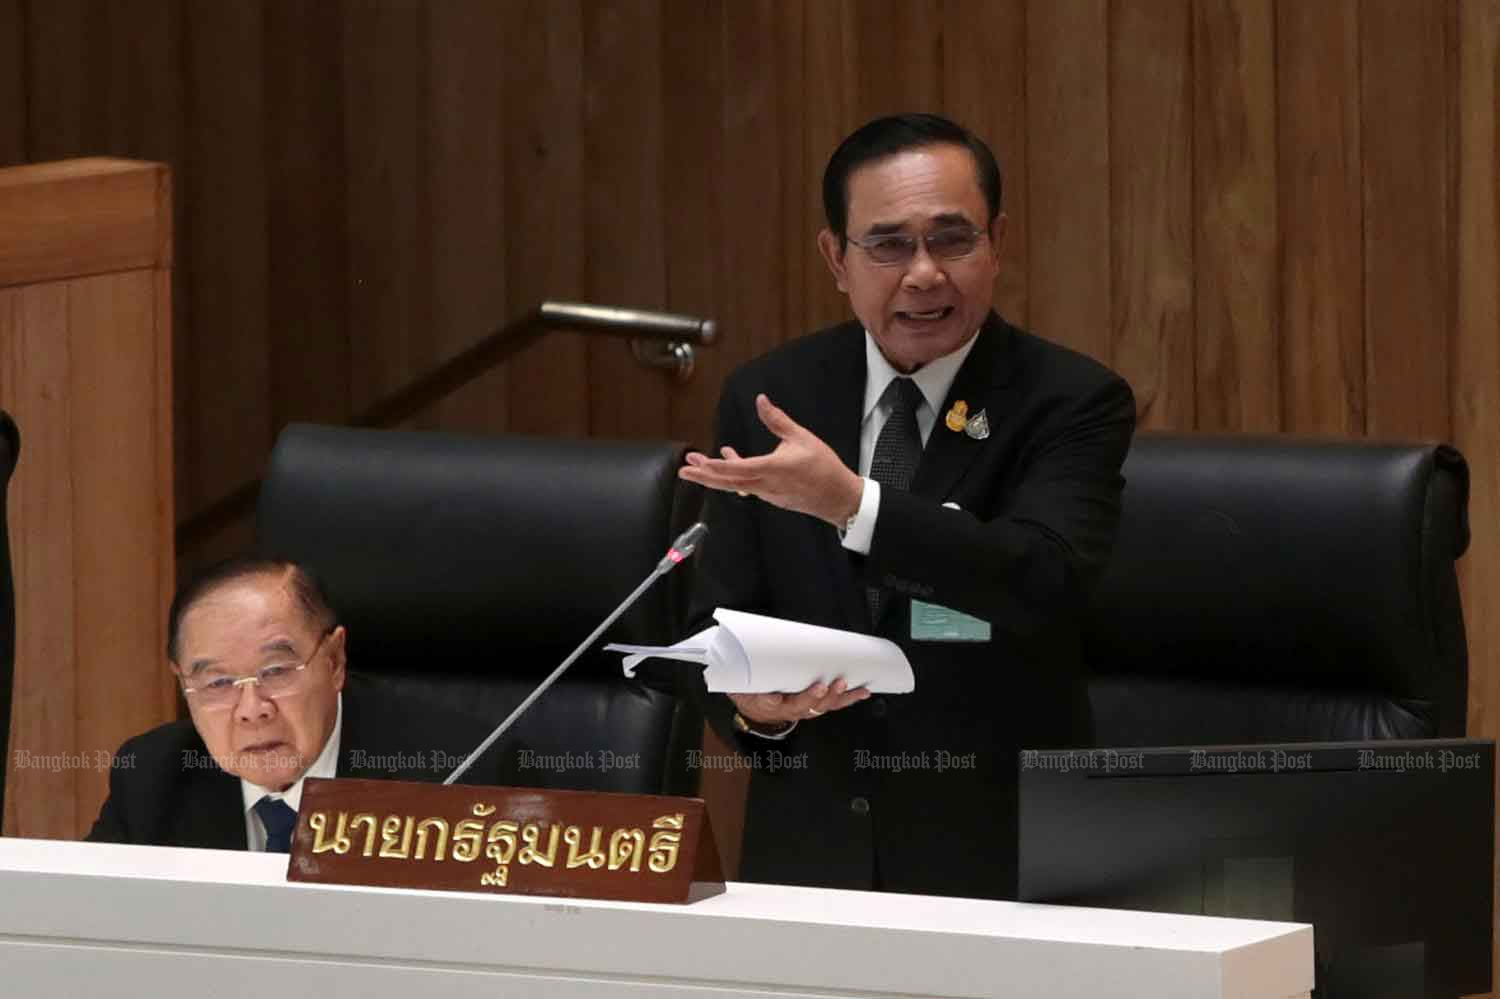 Prime Minister Prayut Chan-o-cha rises to defend himself against allegations surrounding the sale of a land plot in Bangkok's Bang Bon district during the first day of the censure debate at the parliament in Bangkok on Monday. (Photo by Chanat Katanyu)